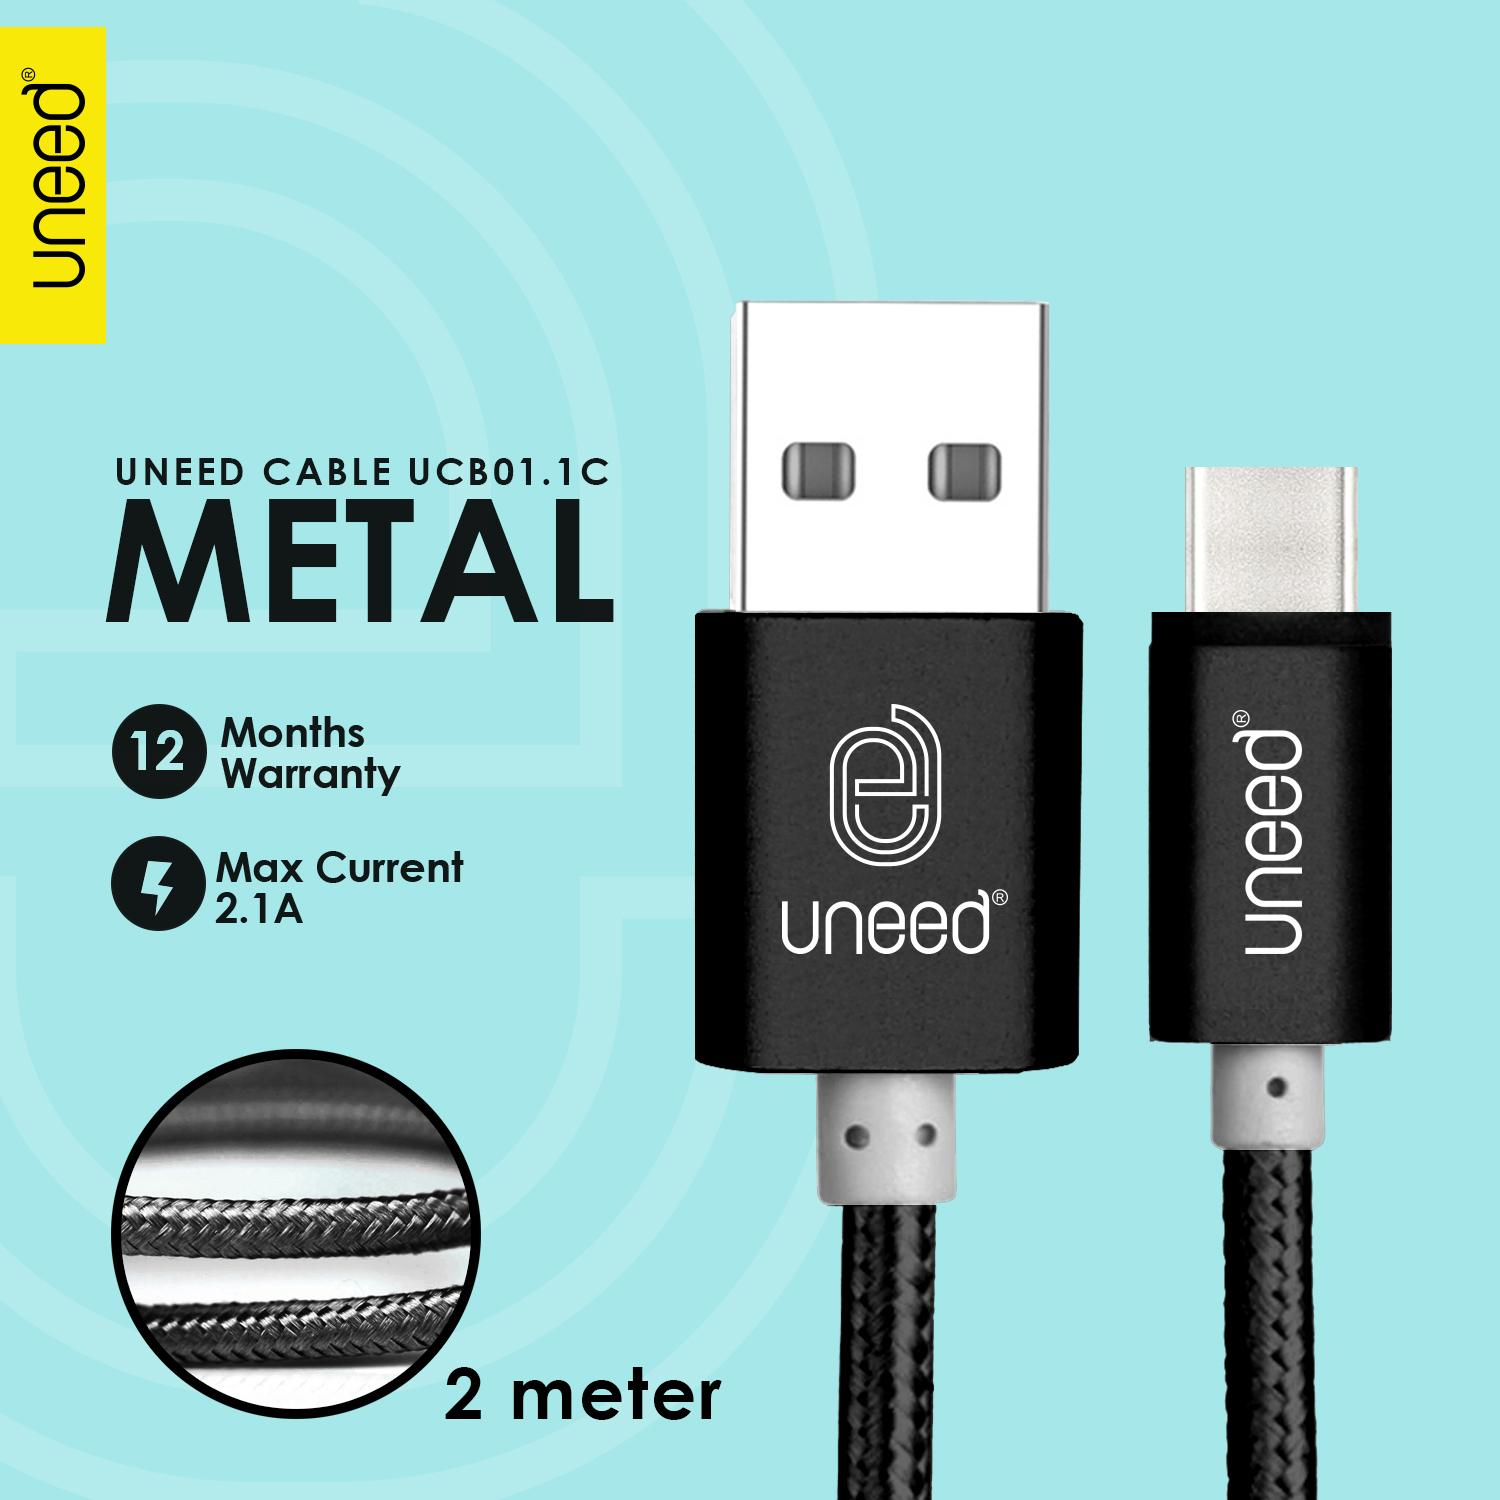 Kabel Charger Data Smartphone Iphone 4 Flat Wellcomm Hitam Uneed Nylon Type C 2m Max Current 21a Ucb011c